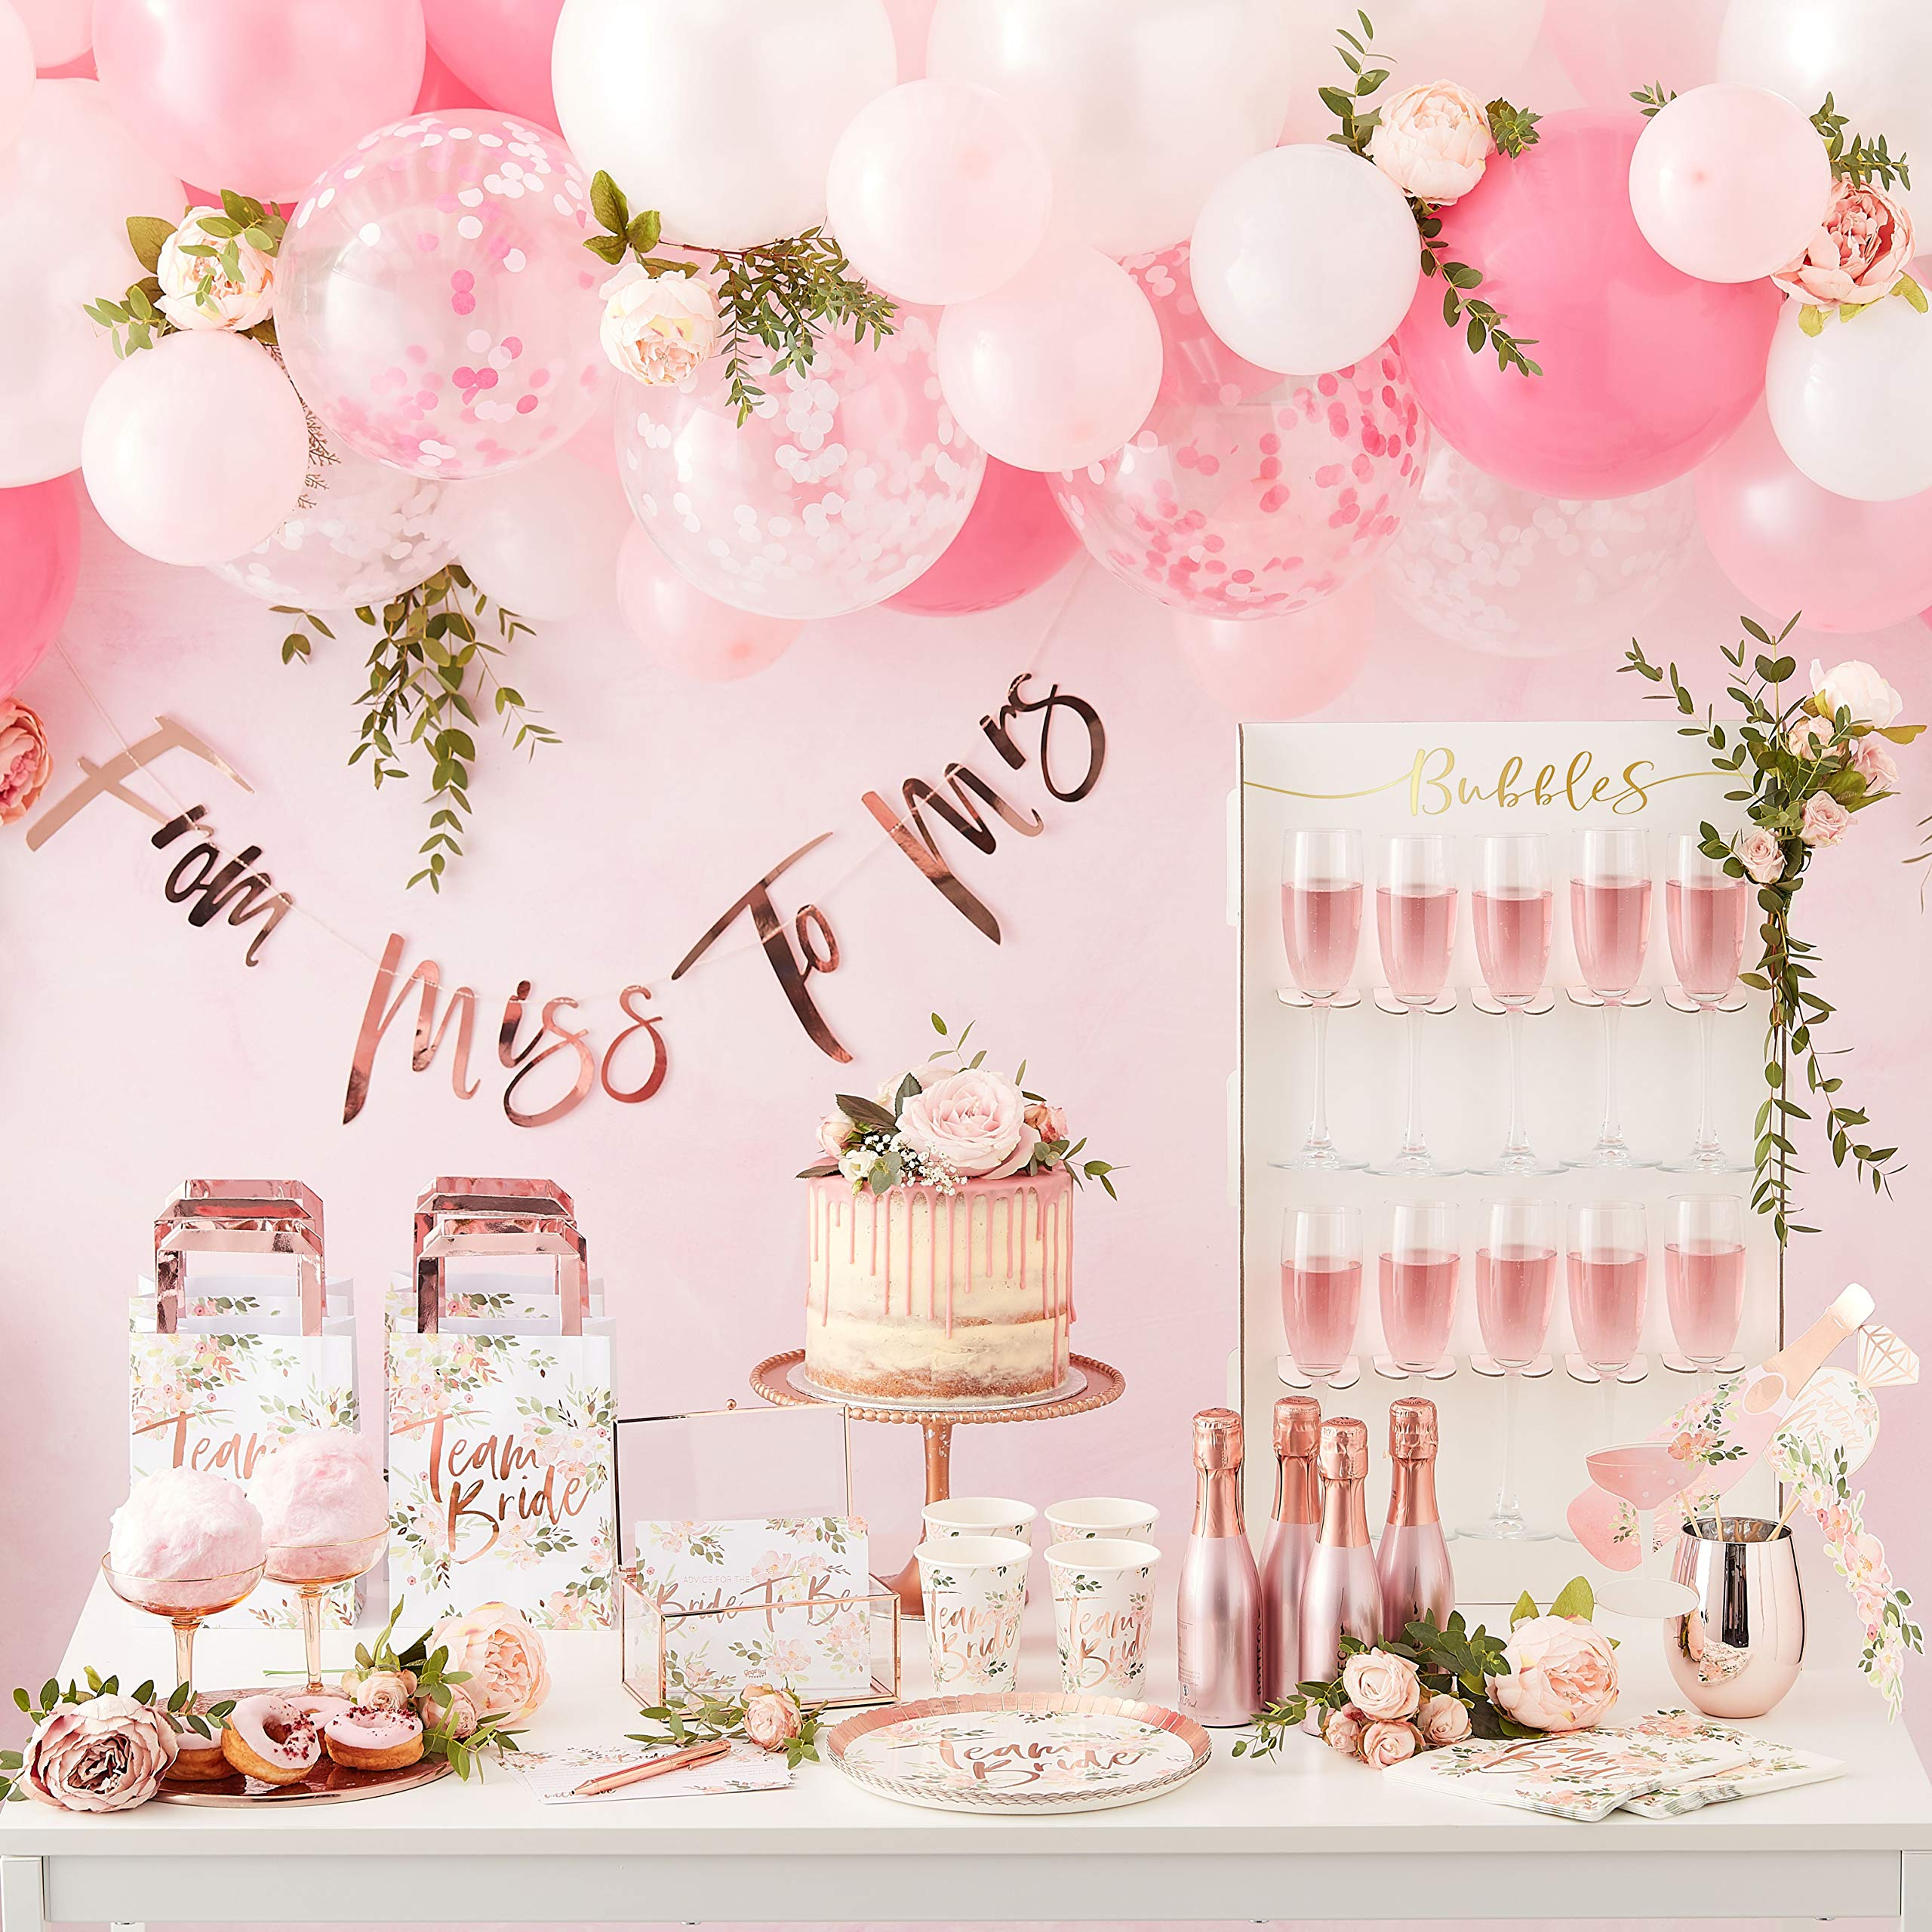 Drinks Wall Bridal Shower Decorations Bridal Shower Games Holds 10 Wine or Champagne Glasses